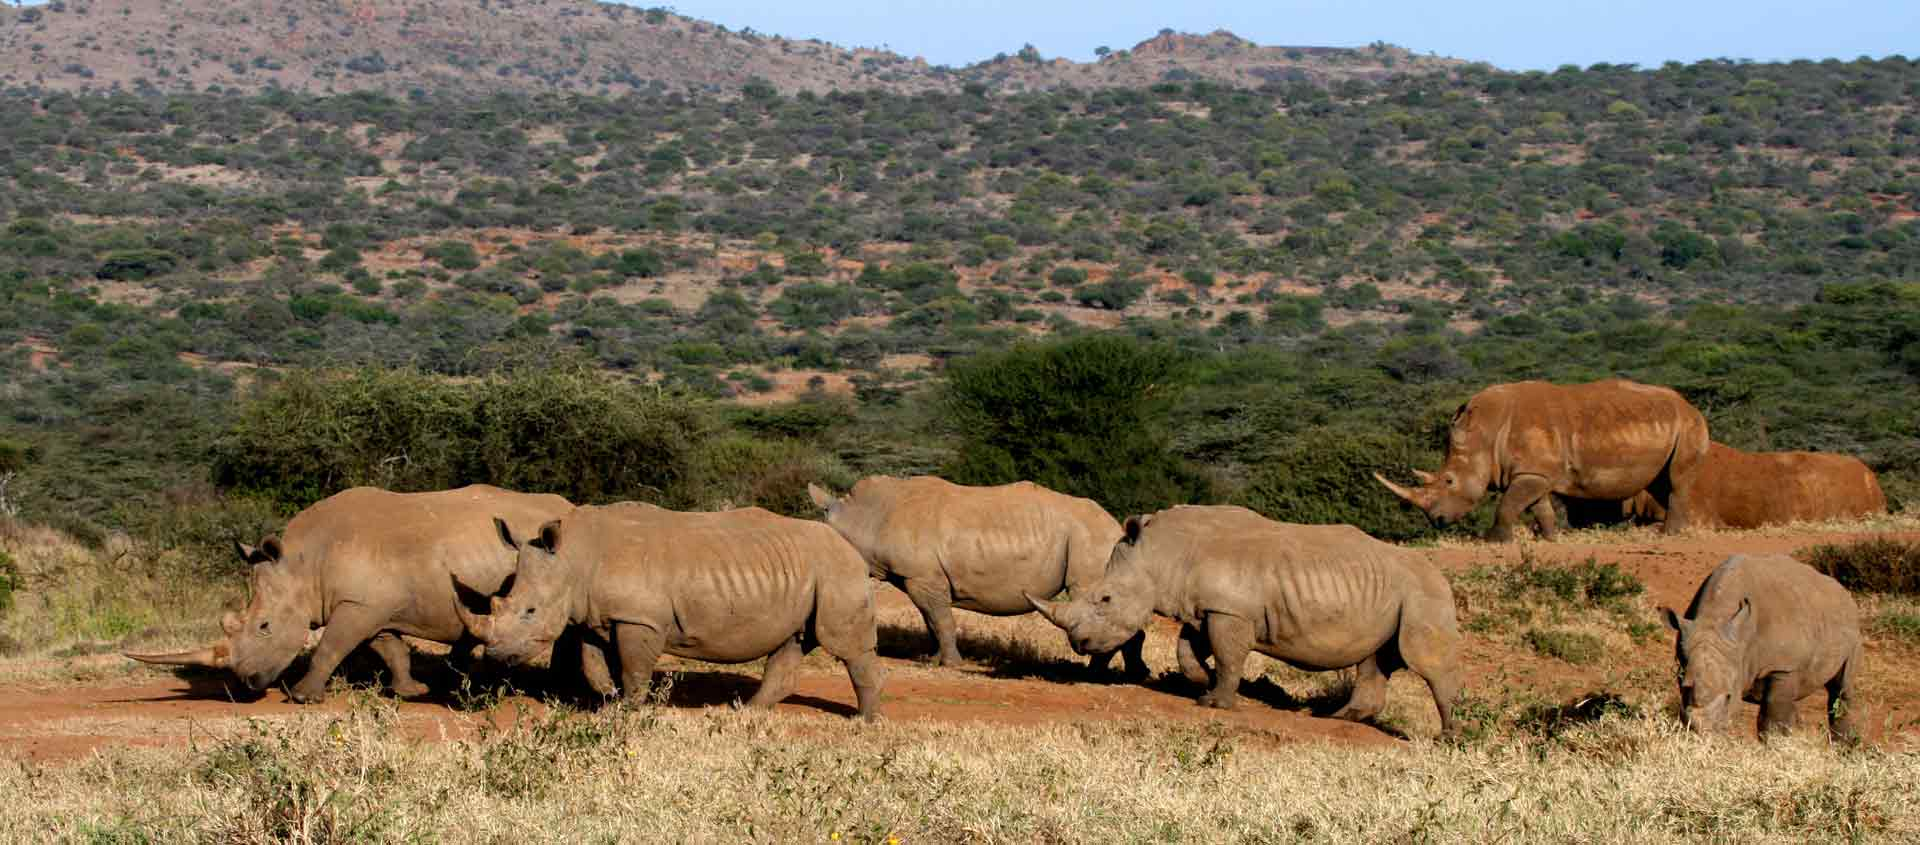 Kenya Private Wildlife Reserves image of White Rhinos